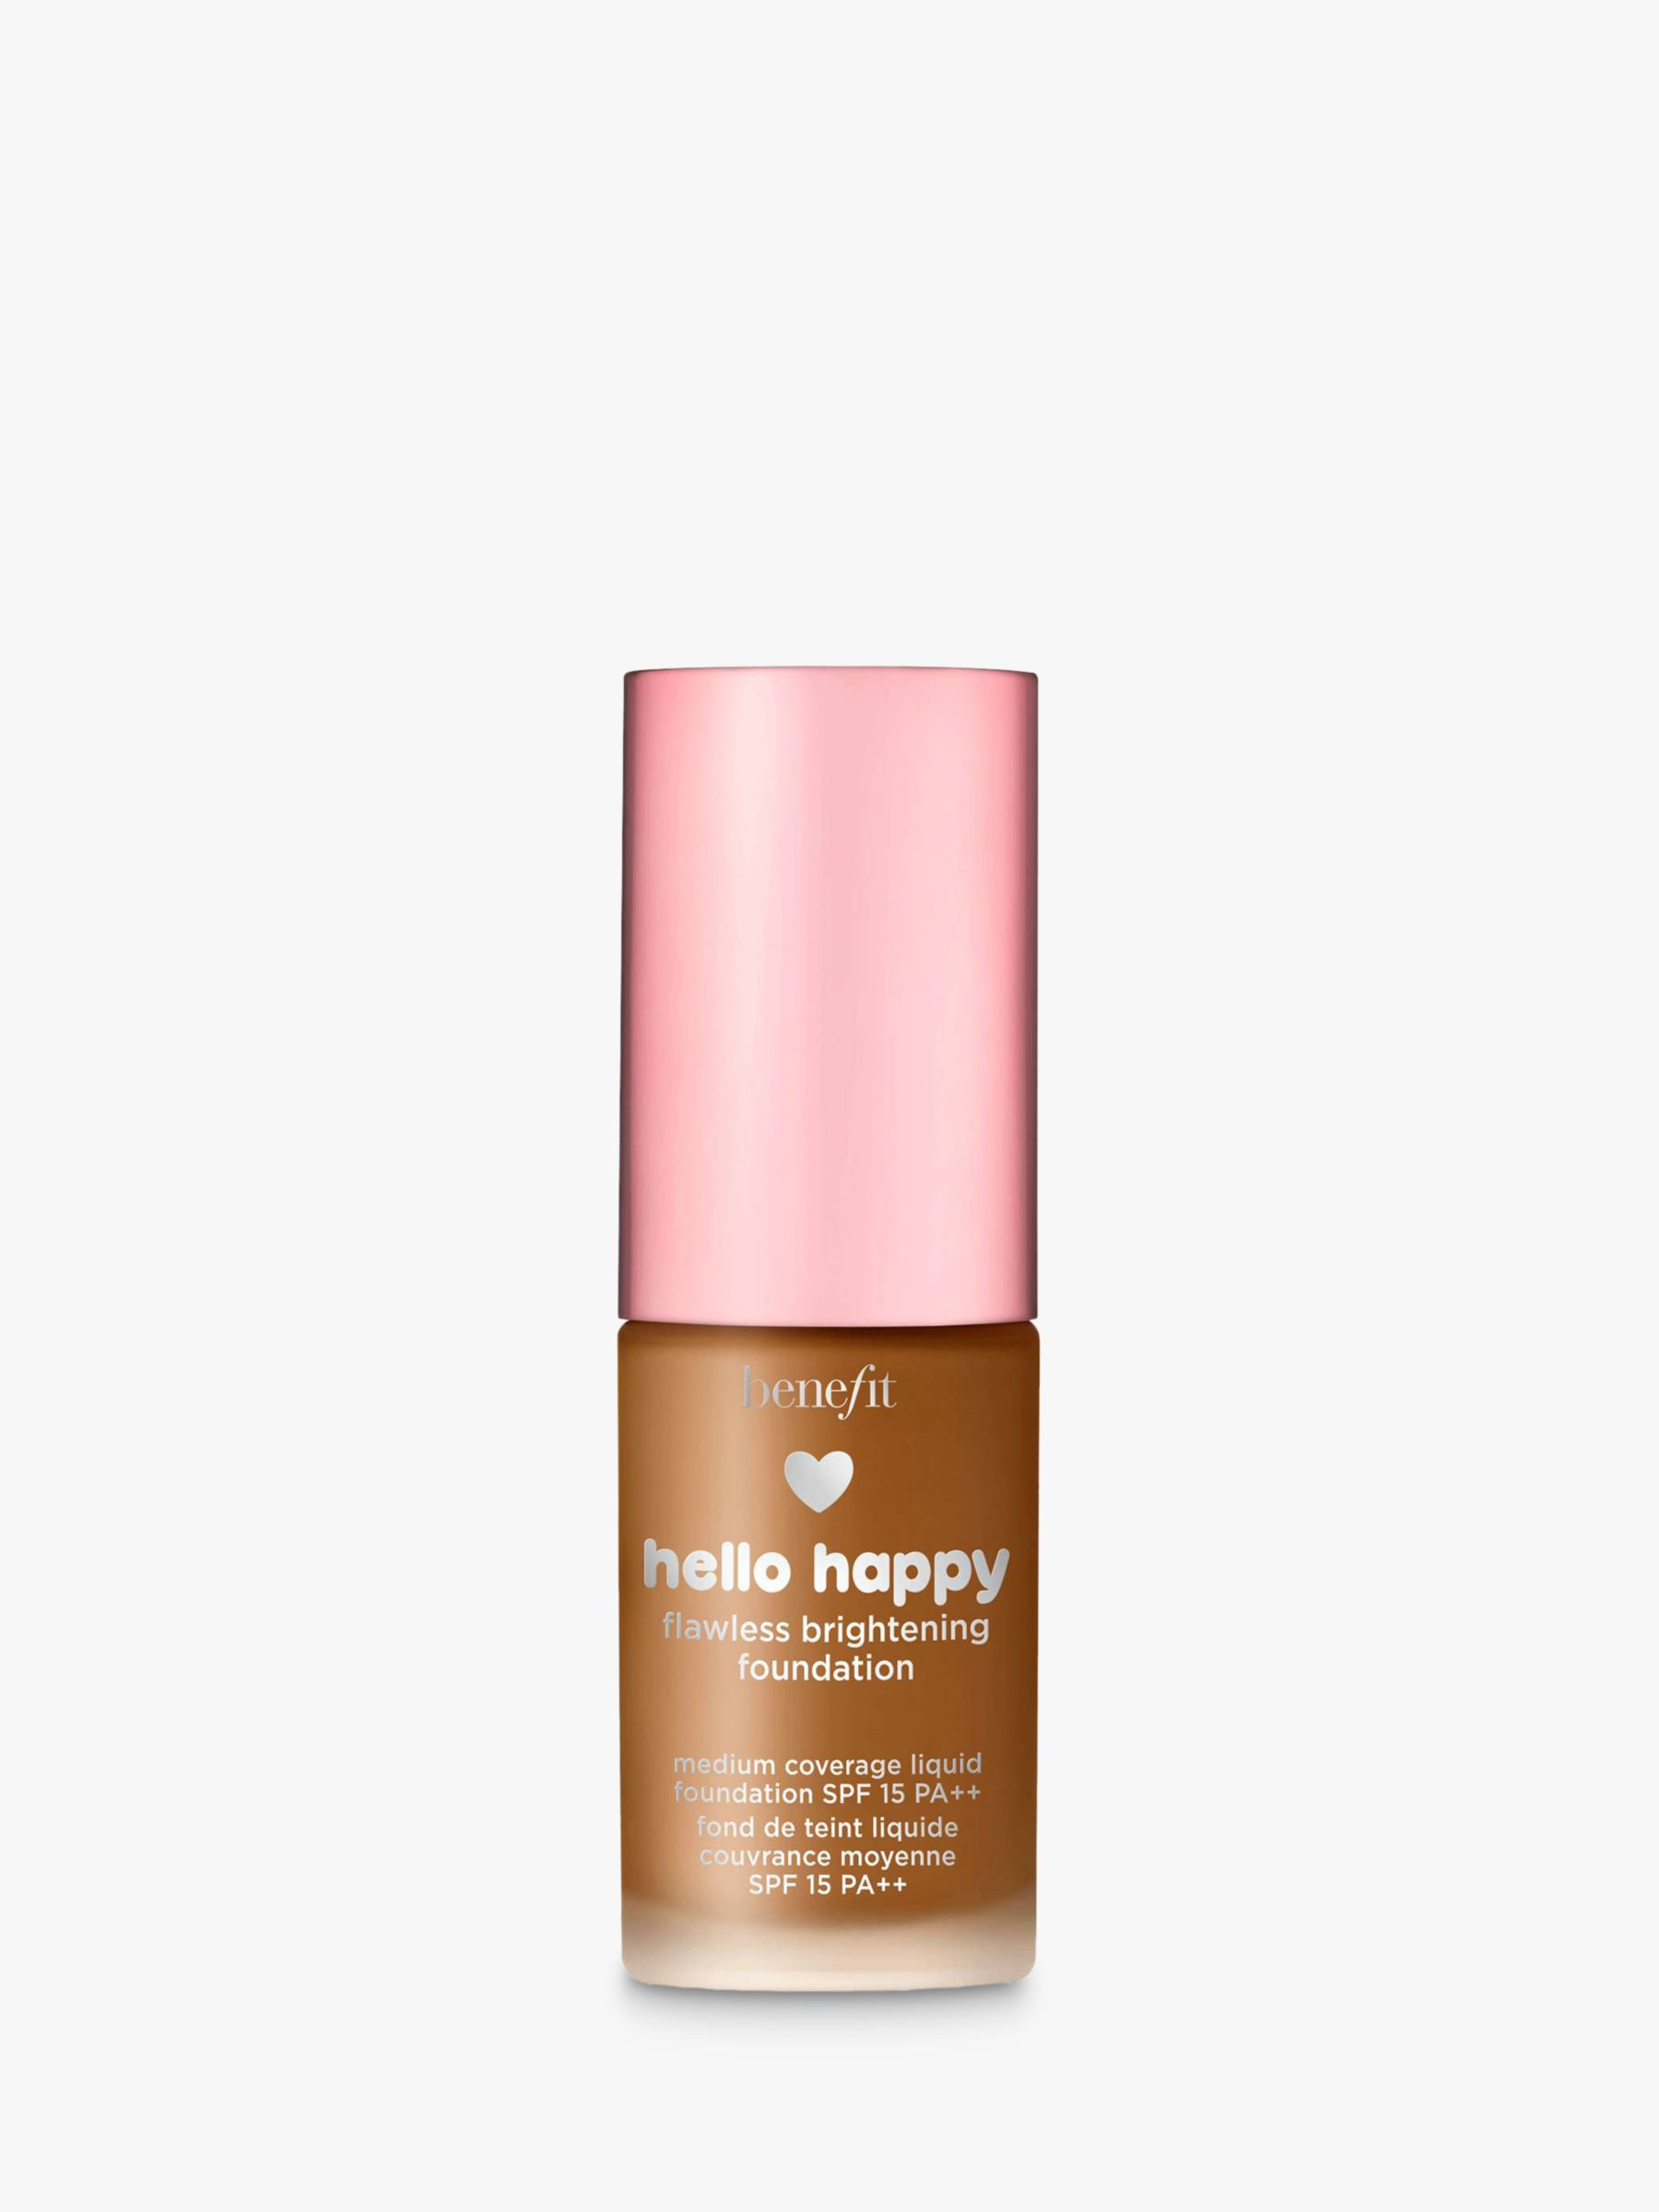 Benefit Benefit Hello Happy Mini Flawless Brightening Foundation SPF 15